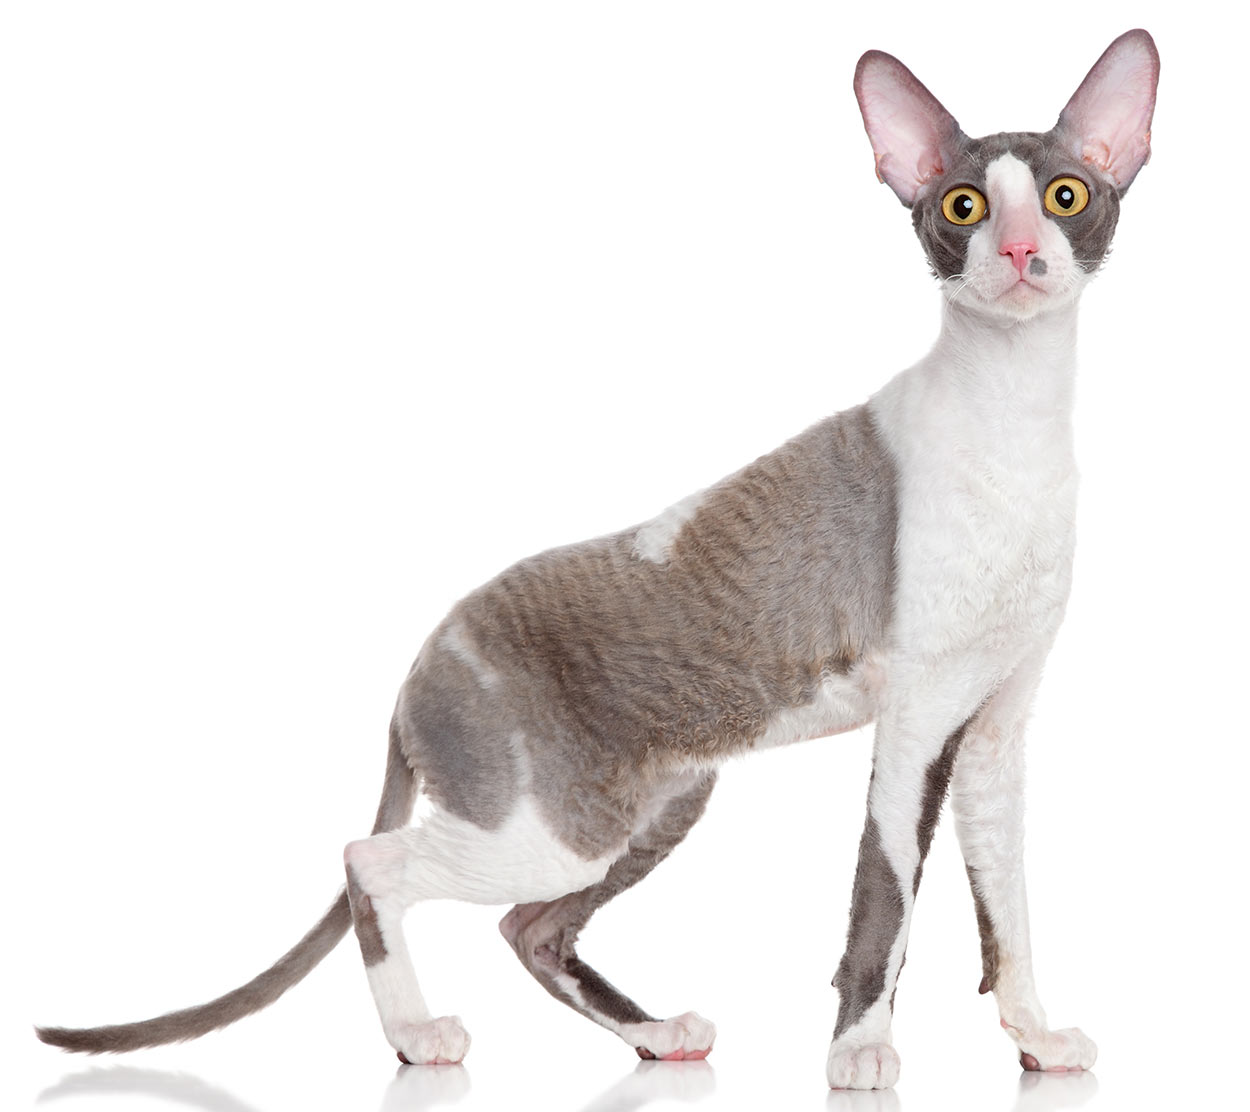 worlds smallest cat - cornish rex